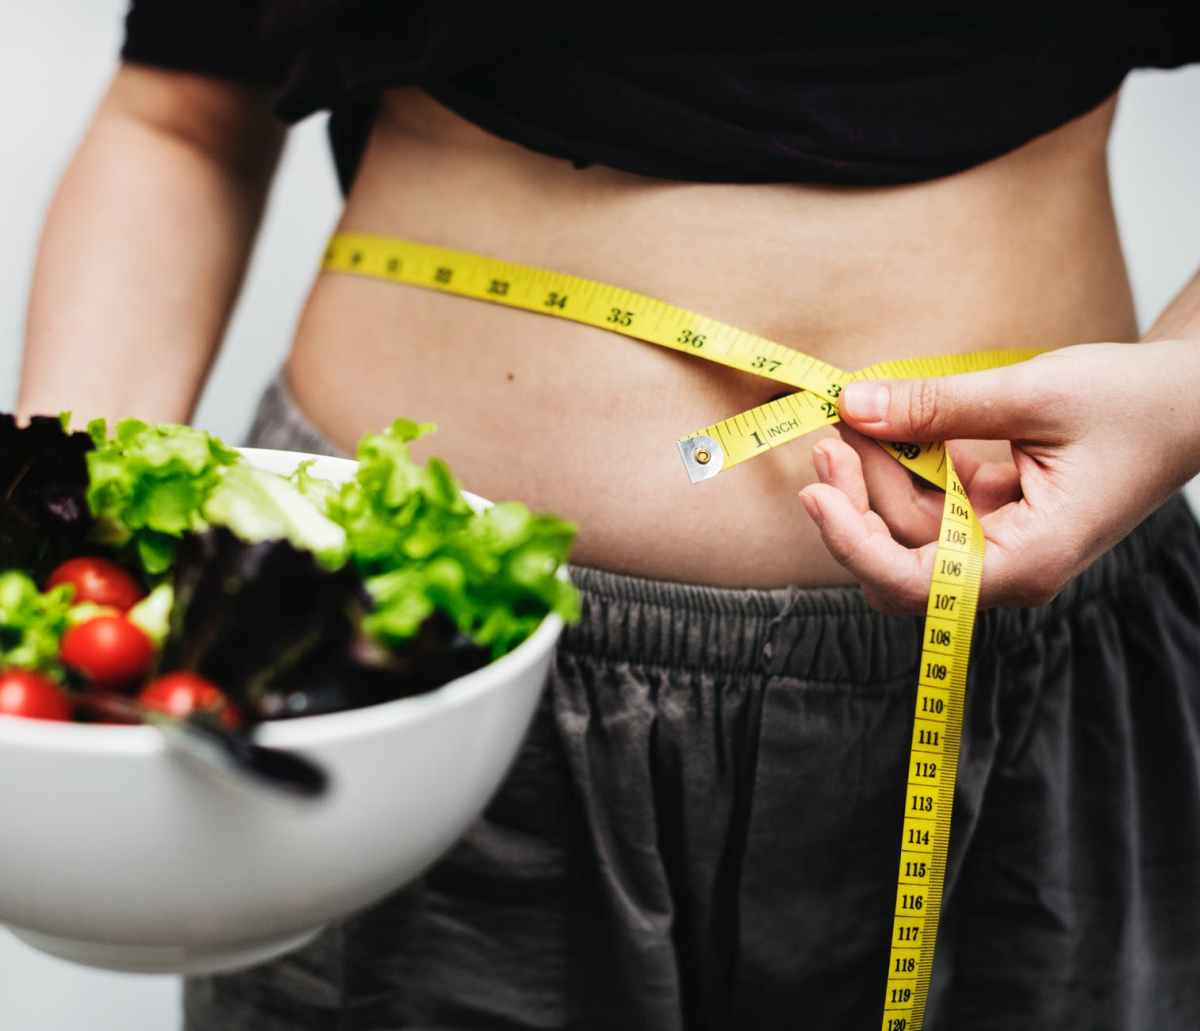 Why some are naturally lean?